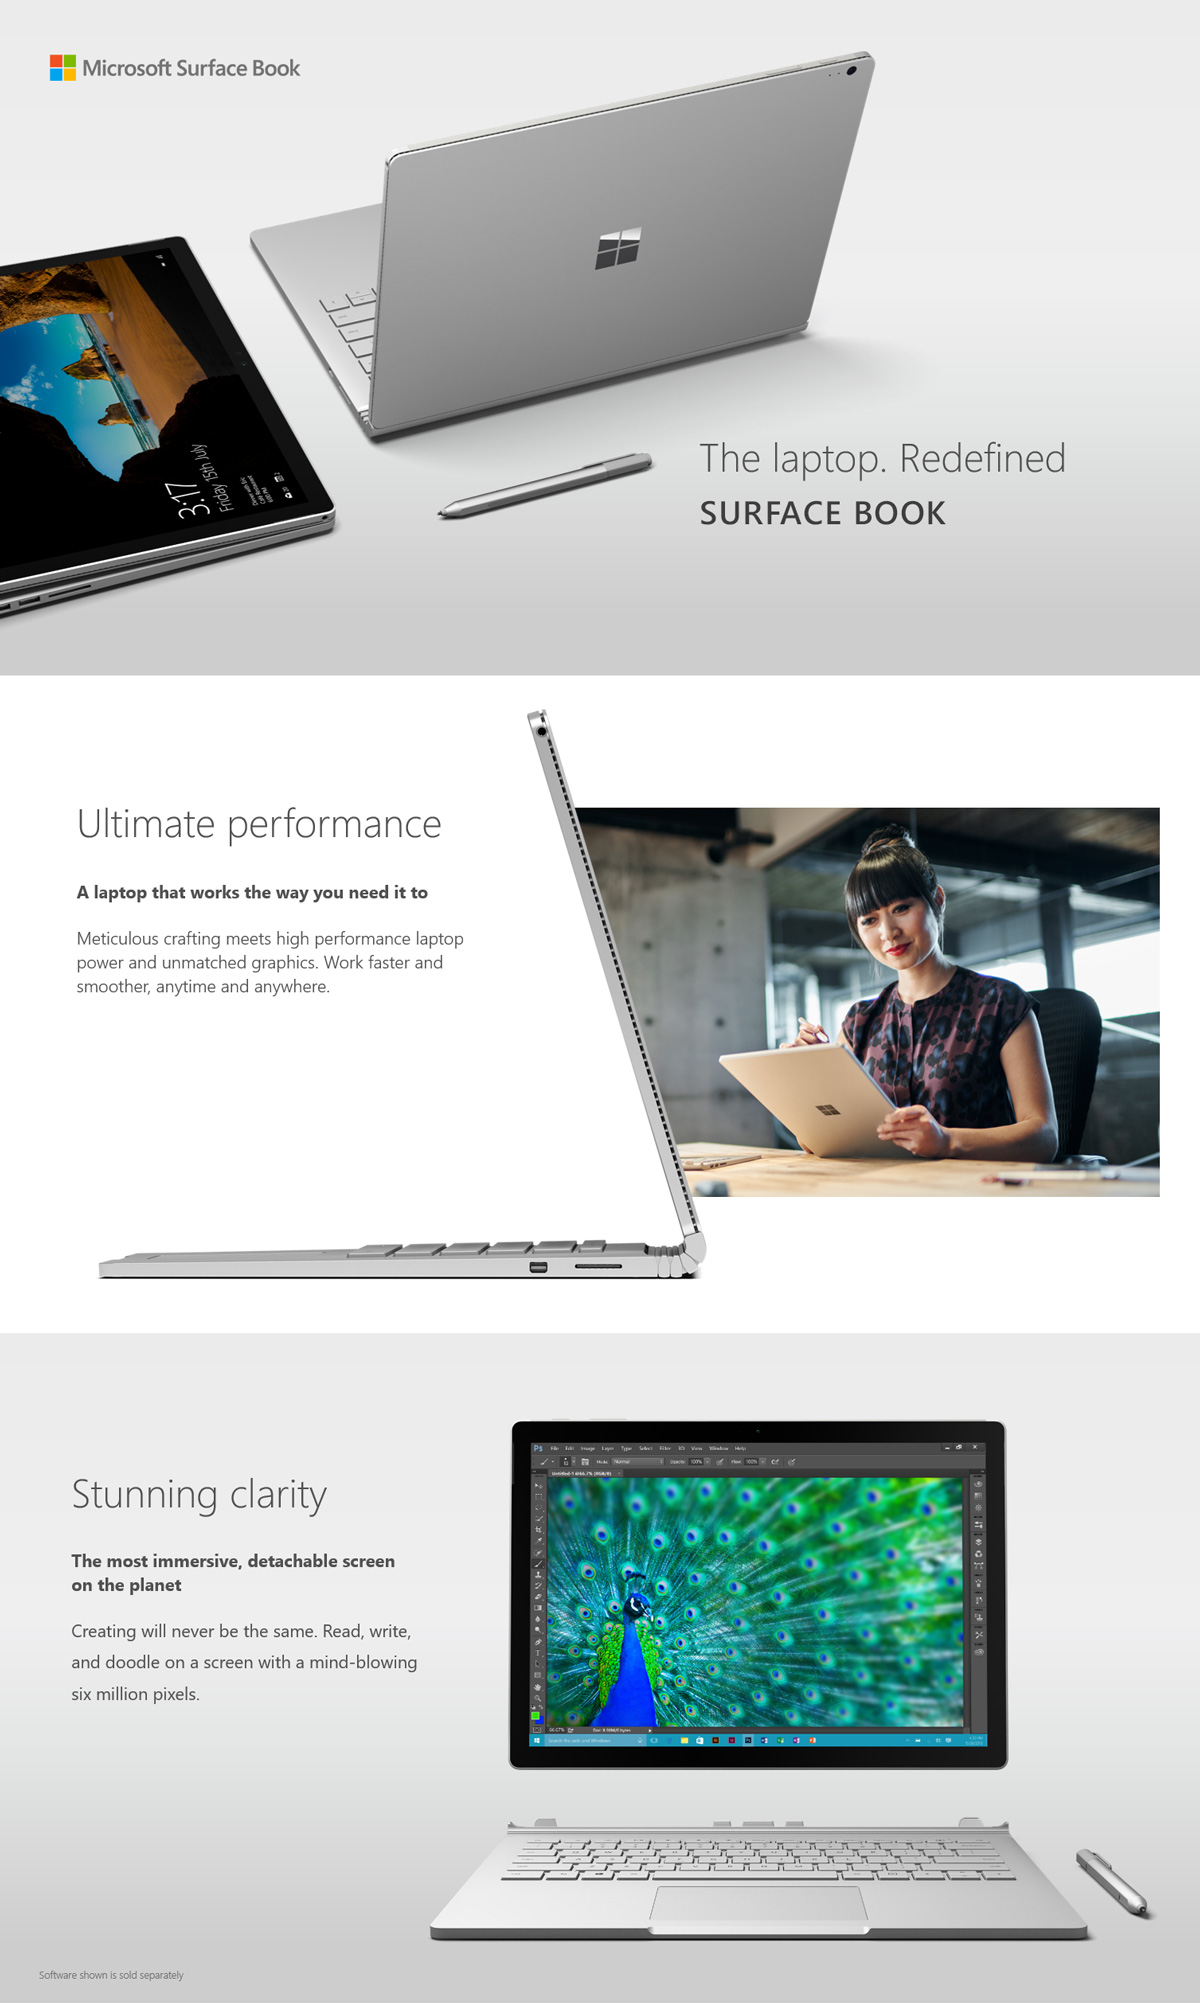 microsoft-surfacebook-lp.jpg